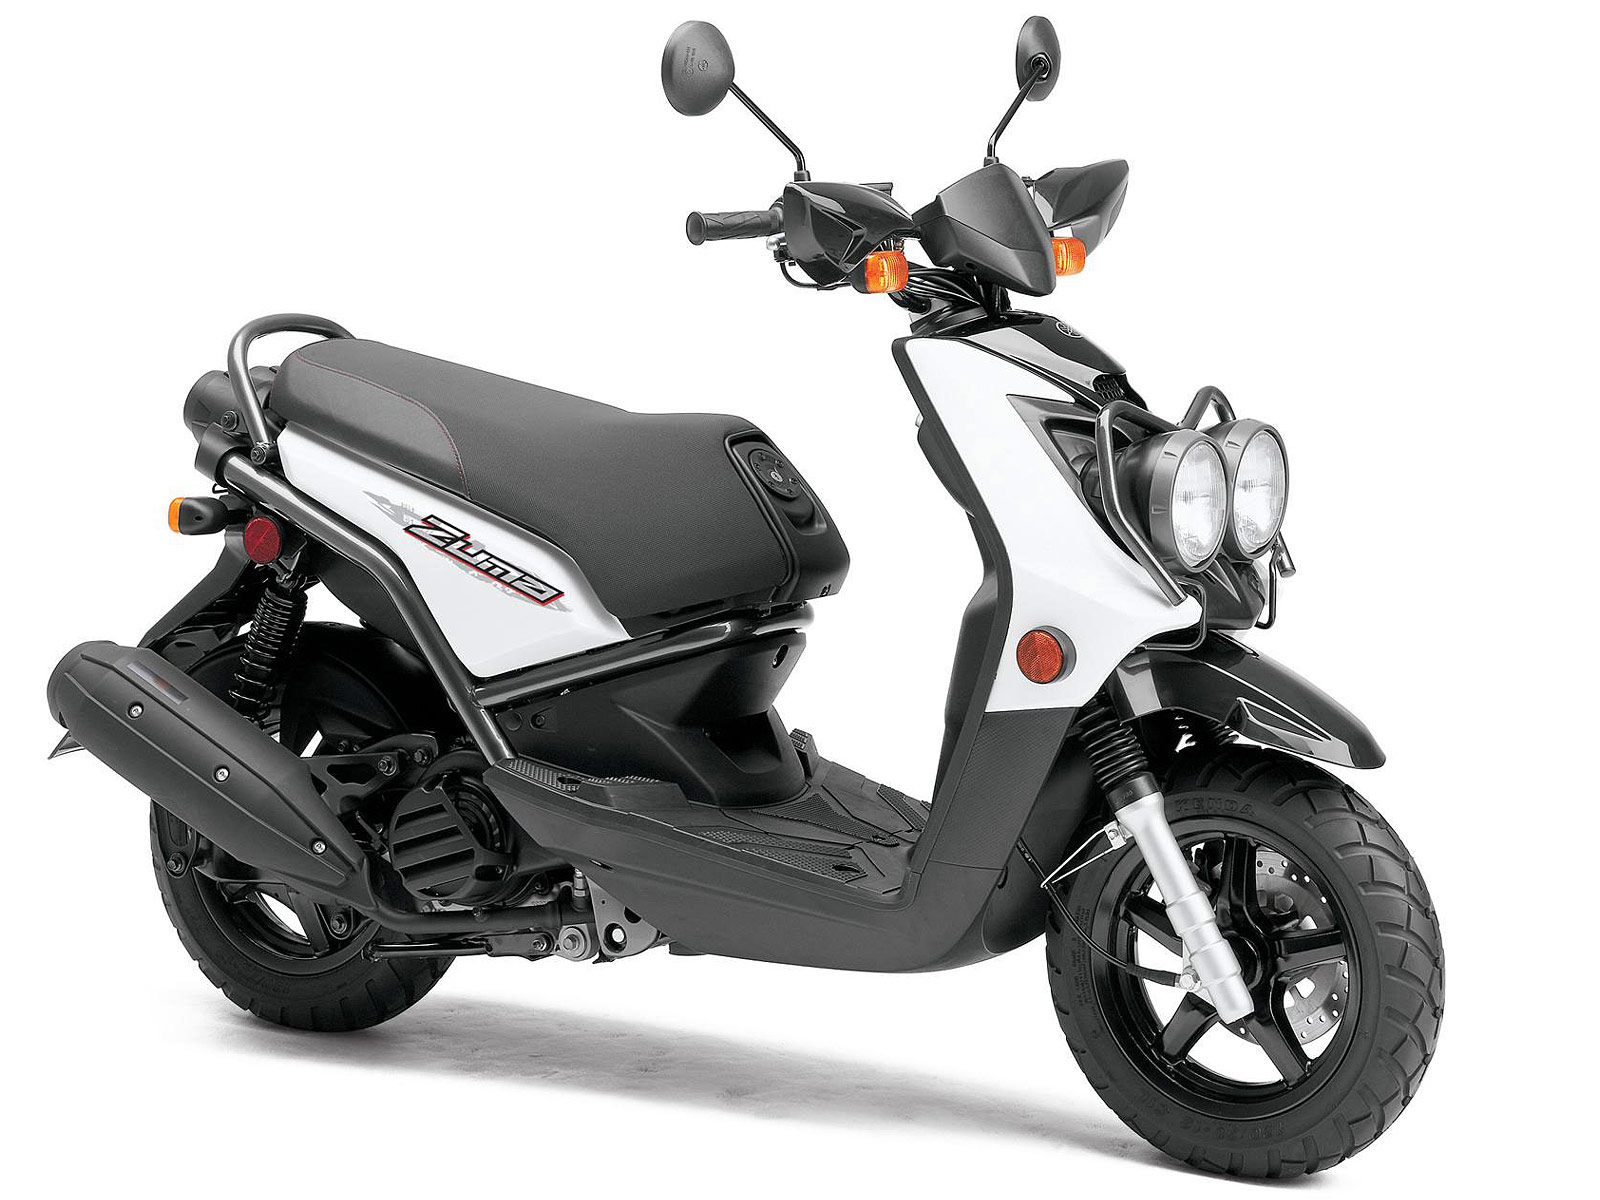 2012 yamaha zuma 125 scooter pictures specifications. Black Bedroom Furniture Sets. Home Design Ideas